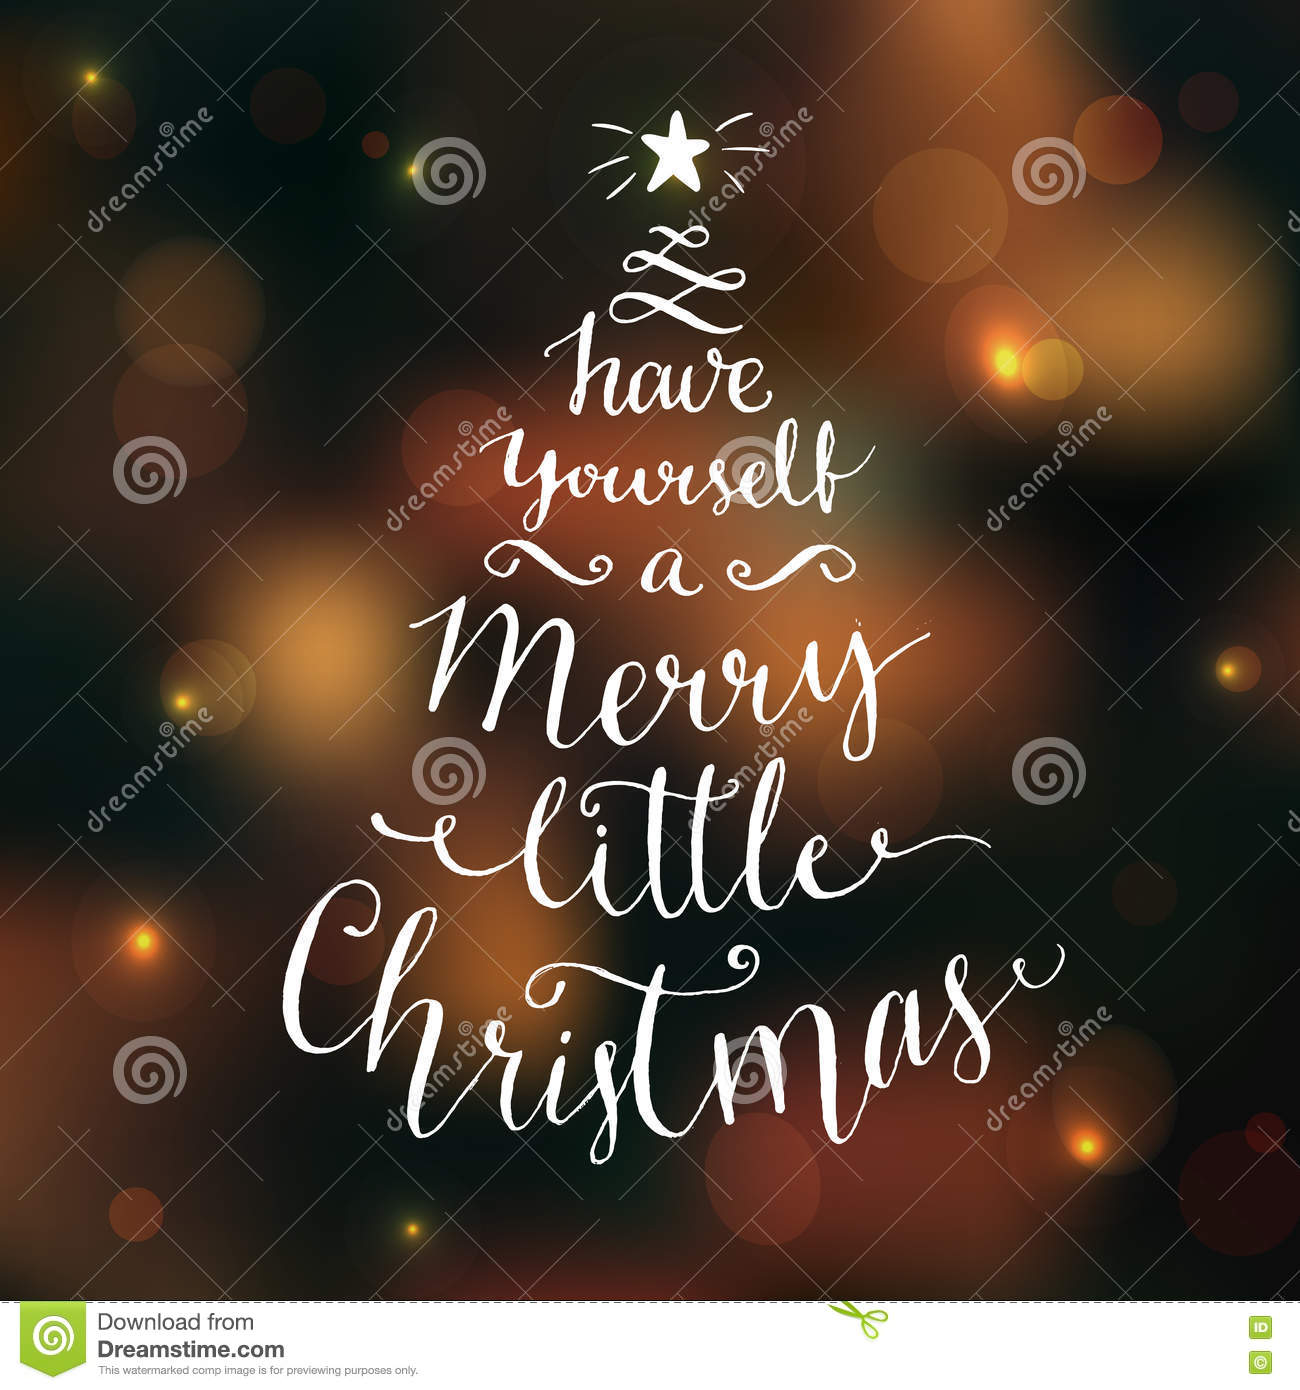 Have Yourself A Merry Little Christmas.Have Yourself A Merry Little Christmas Greeting Card With